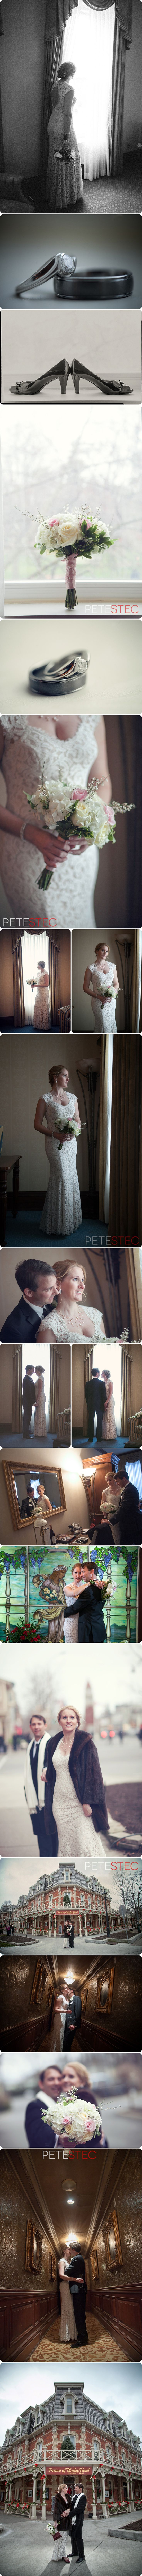 Peter Stec - Prince of Wales Winter Wedding